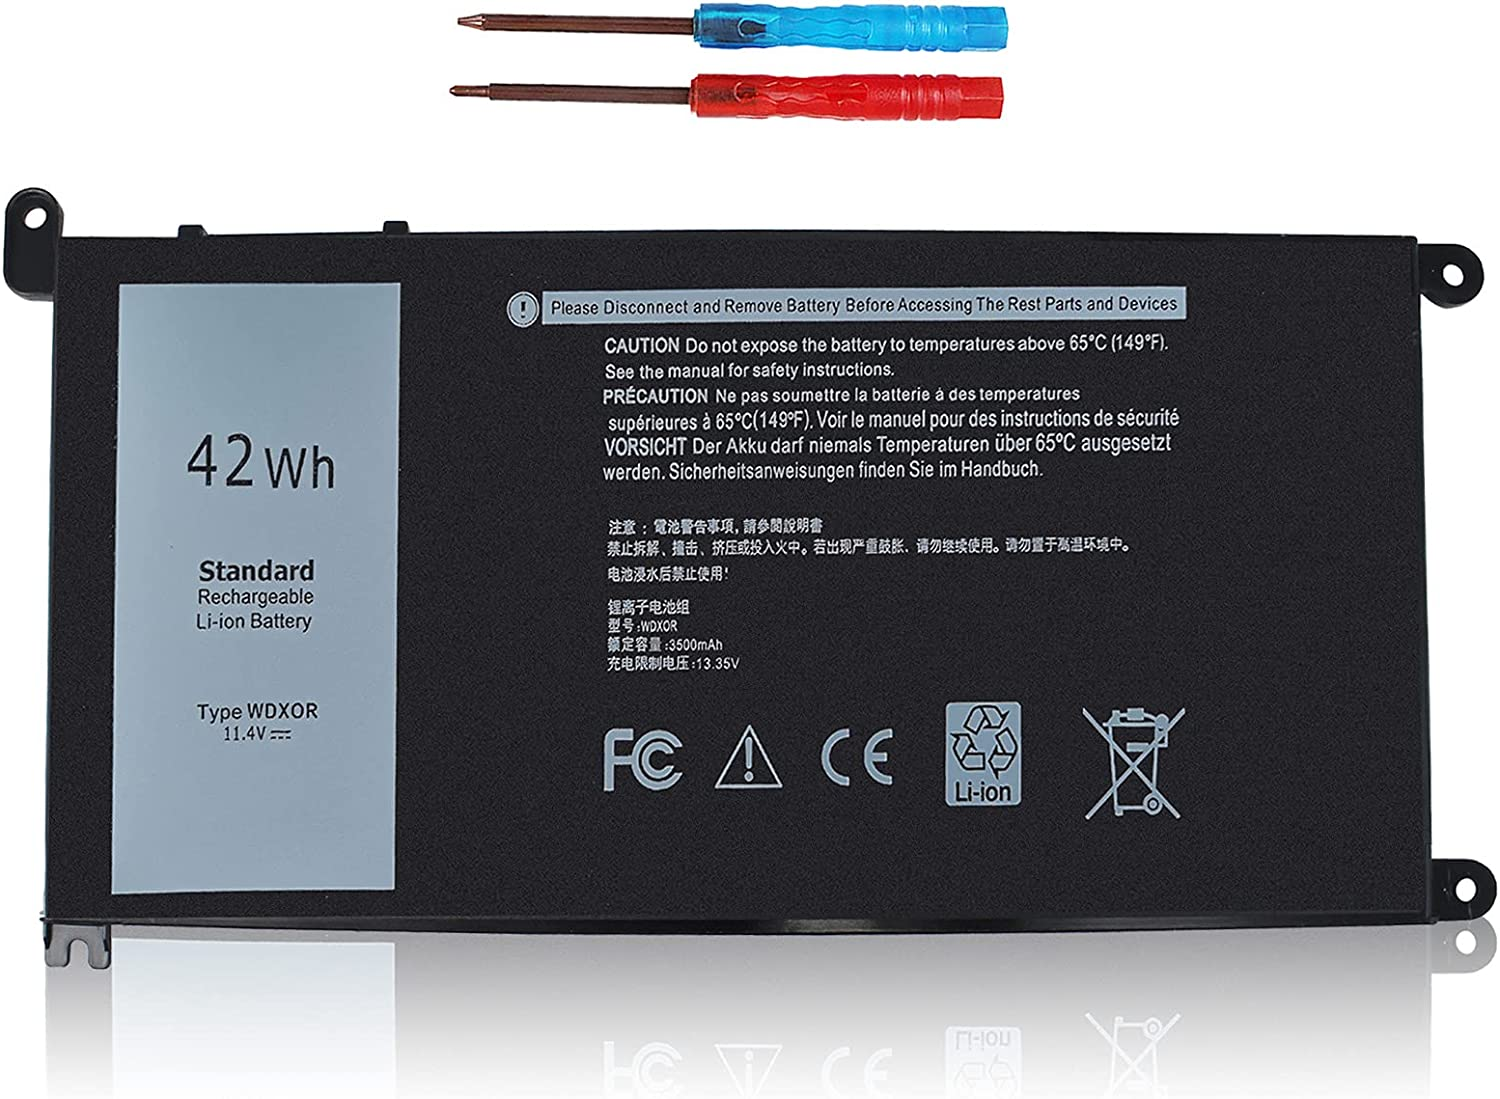 WDXOR Battery for Dell Inspiron 15 5000 Series 5538 5565 5567 5568 5570 5575 5578 5579 5580 15-5567-D1525A 15-5567-D1525R 15-5567-D1545A 15-5567-D1625A 15-5567-D1625L Y3F7Y FC92N CYMGM 3CRH3 P58F